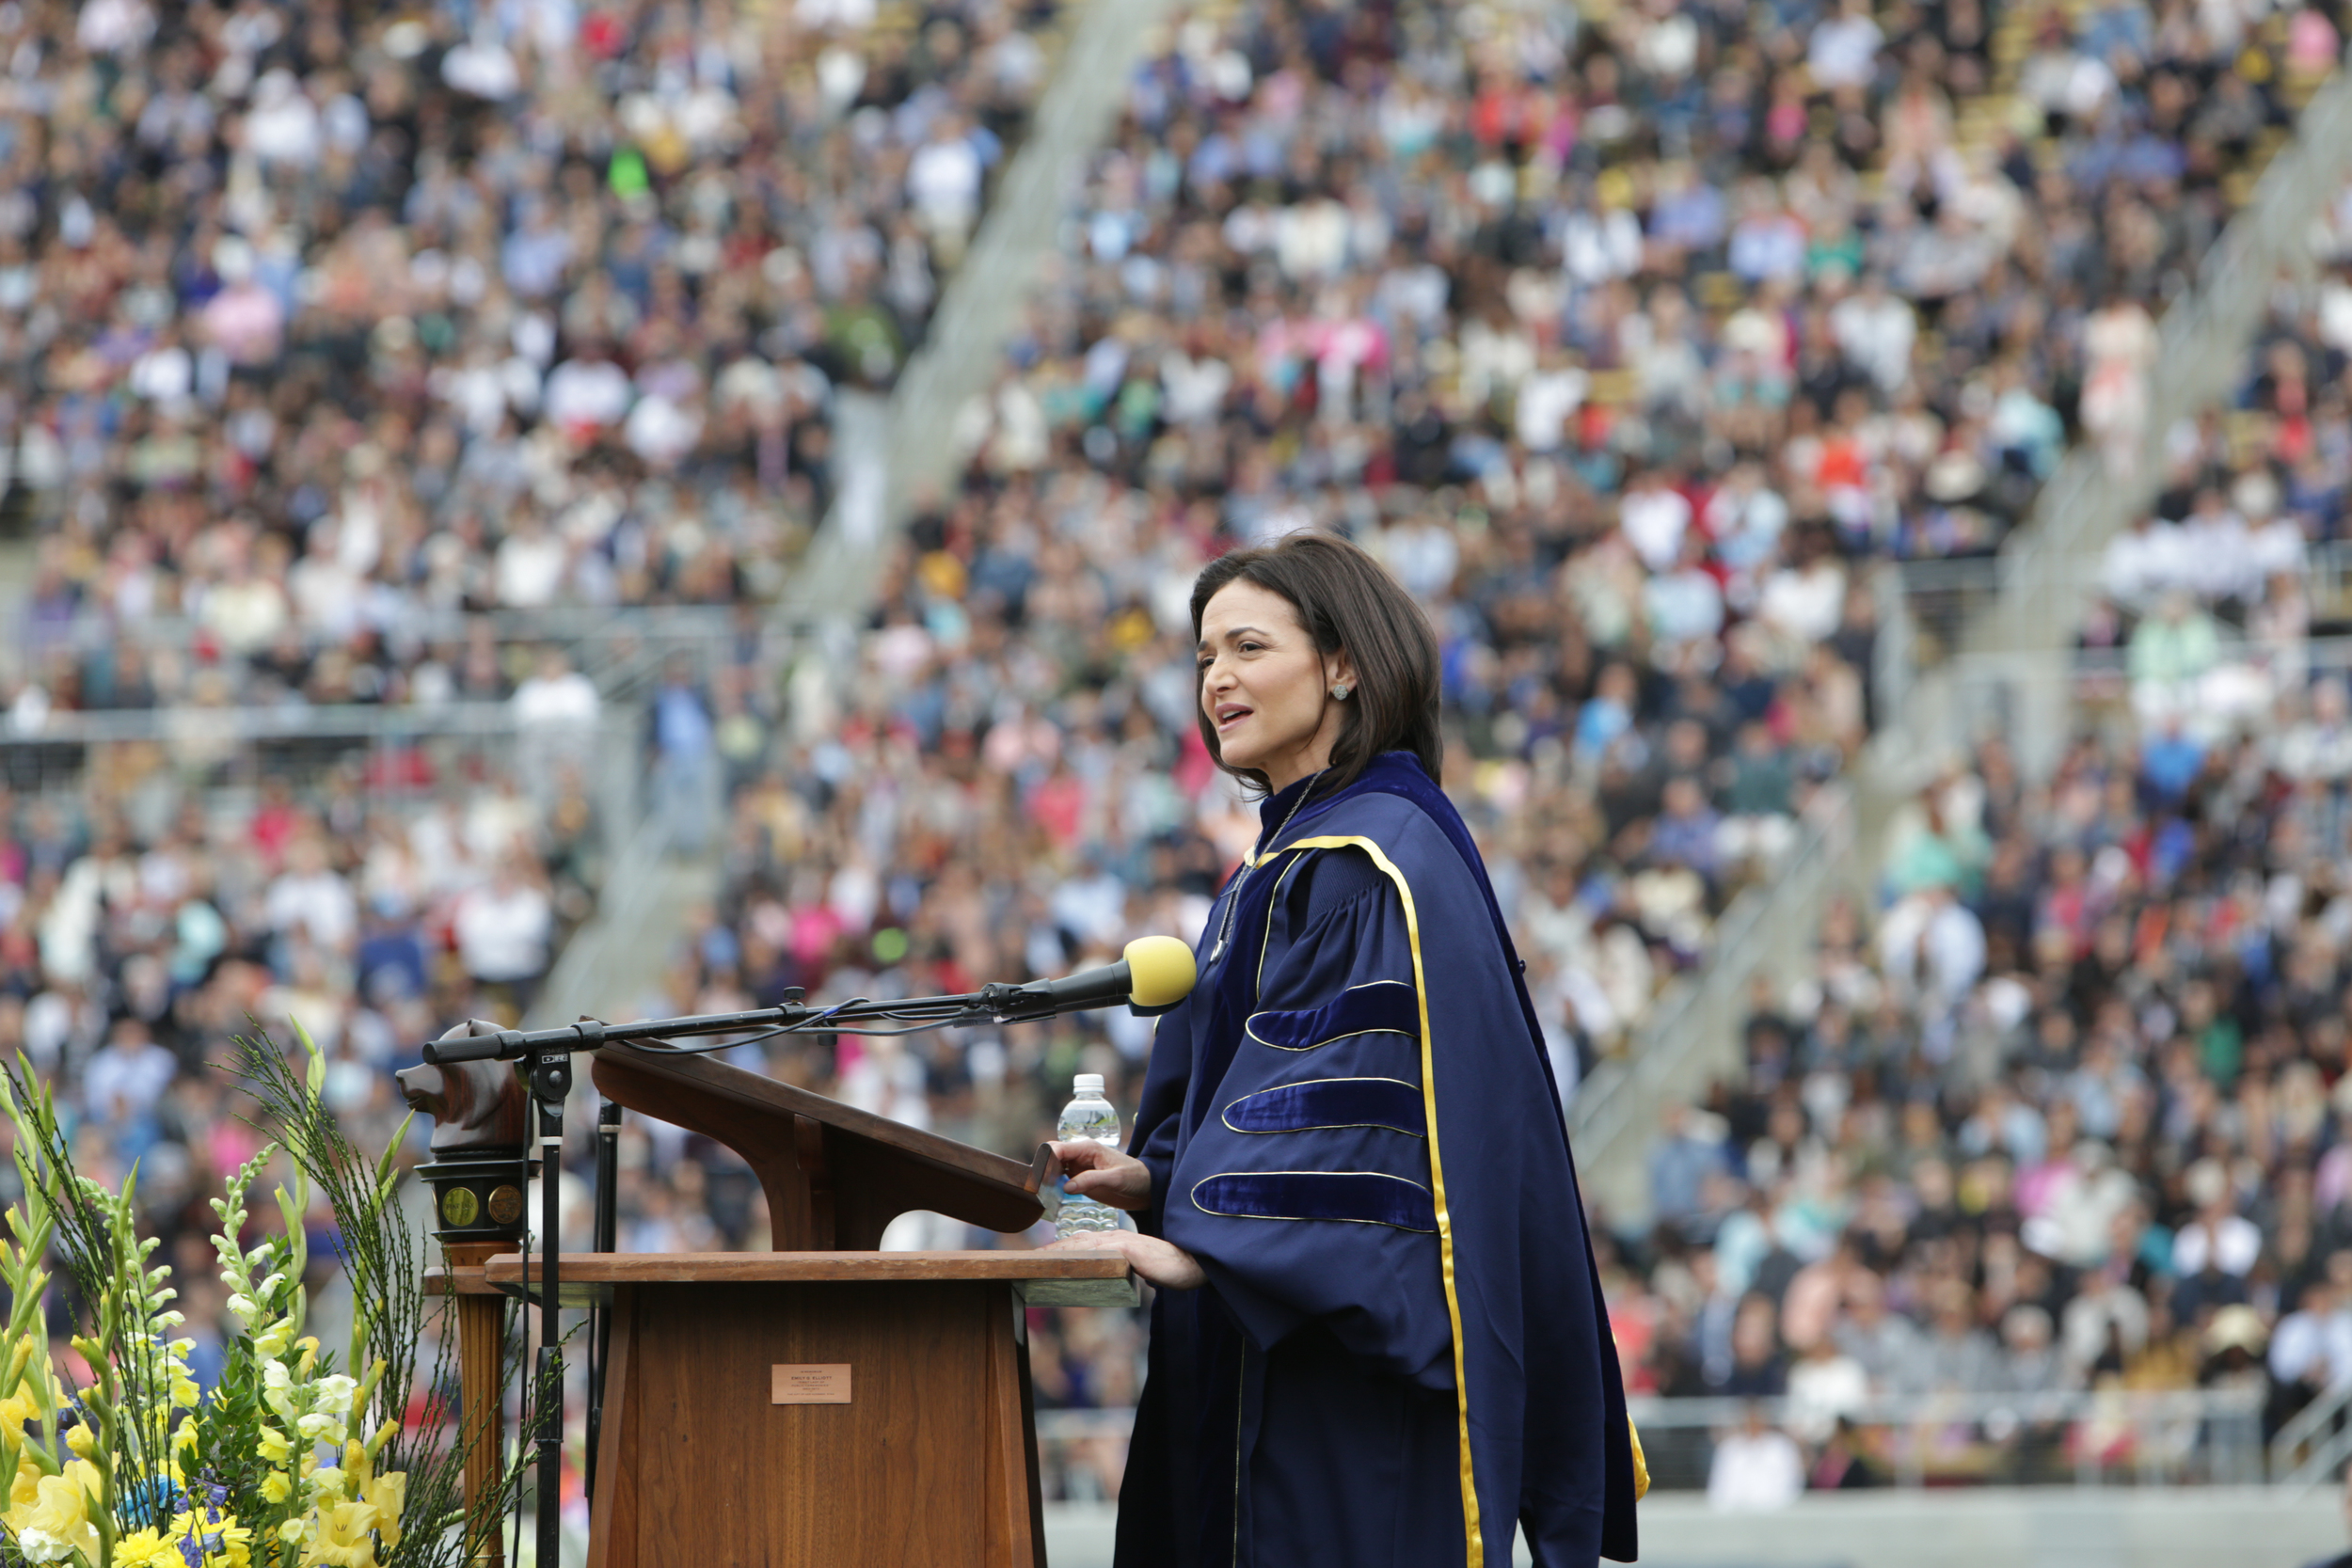 Sheryl Sandberg gave the commencement speech at the University of California Berkeley in May 2016.